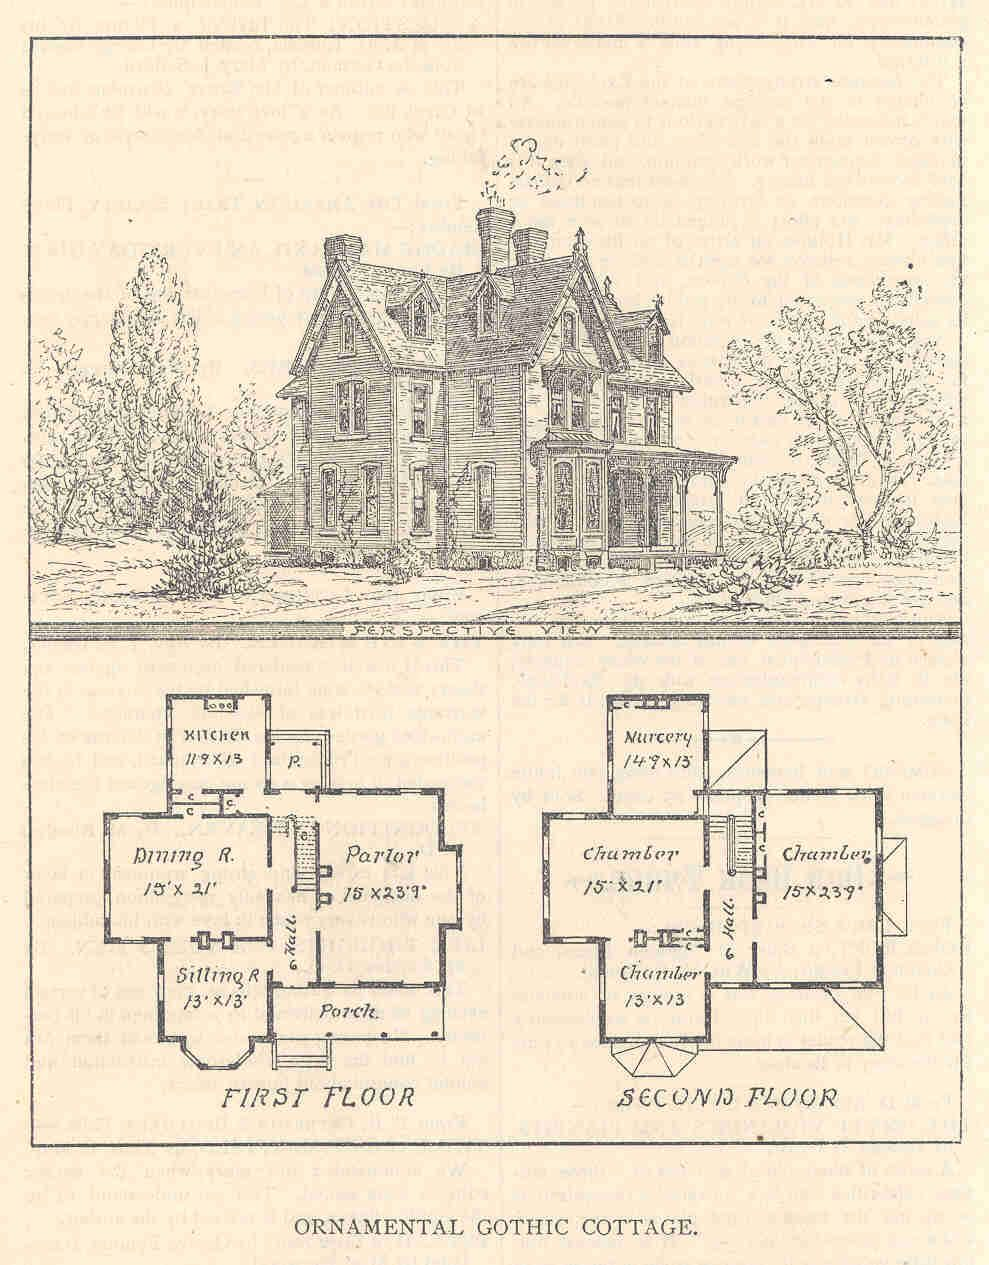 Gothic House Plans With Turrets The Sims 4 Floorplans